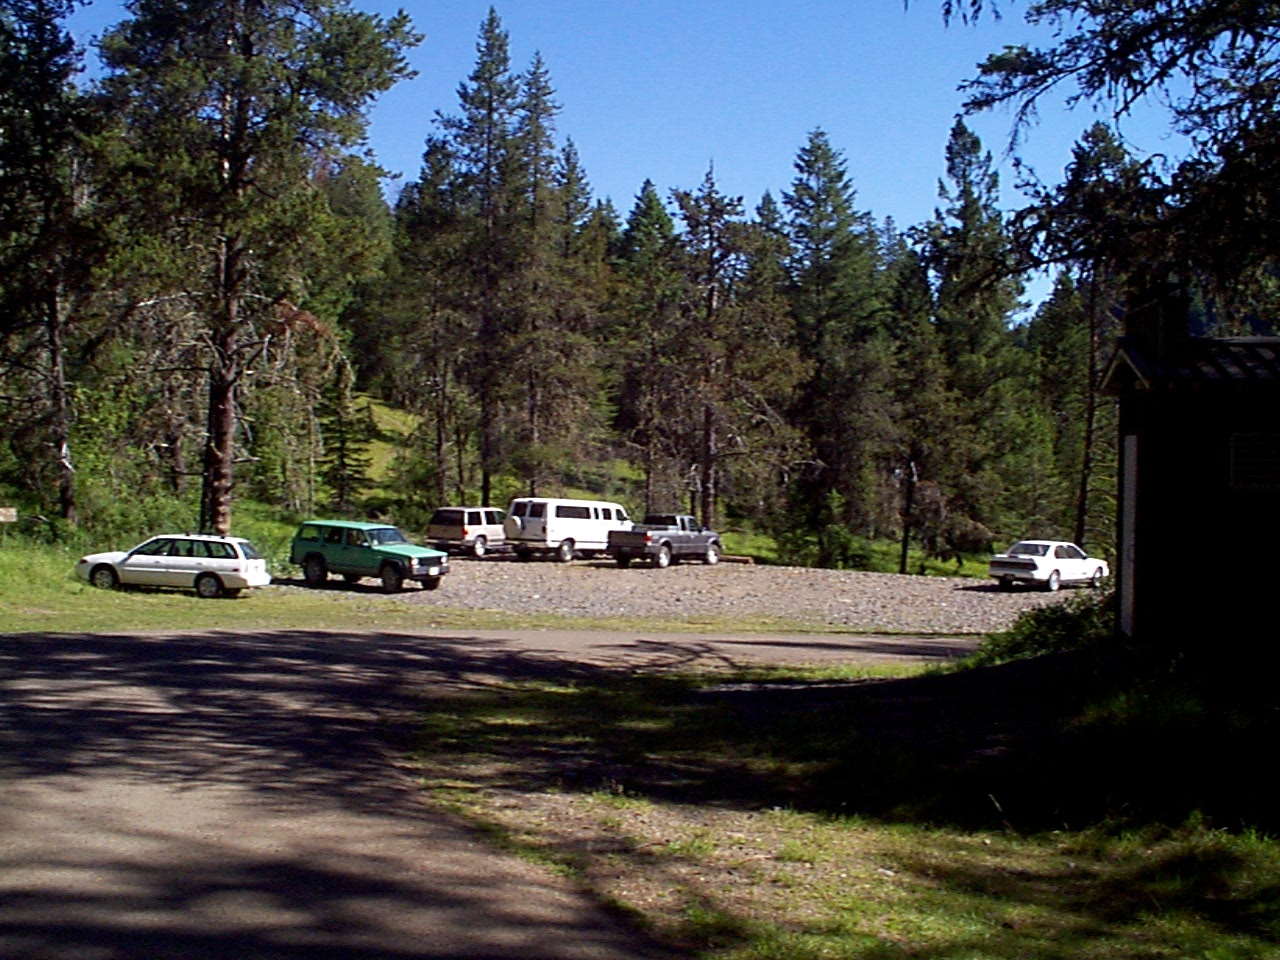 Large hiker trailhead with trucks and pine trees in background